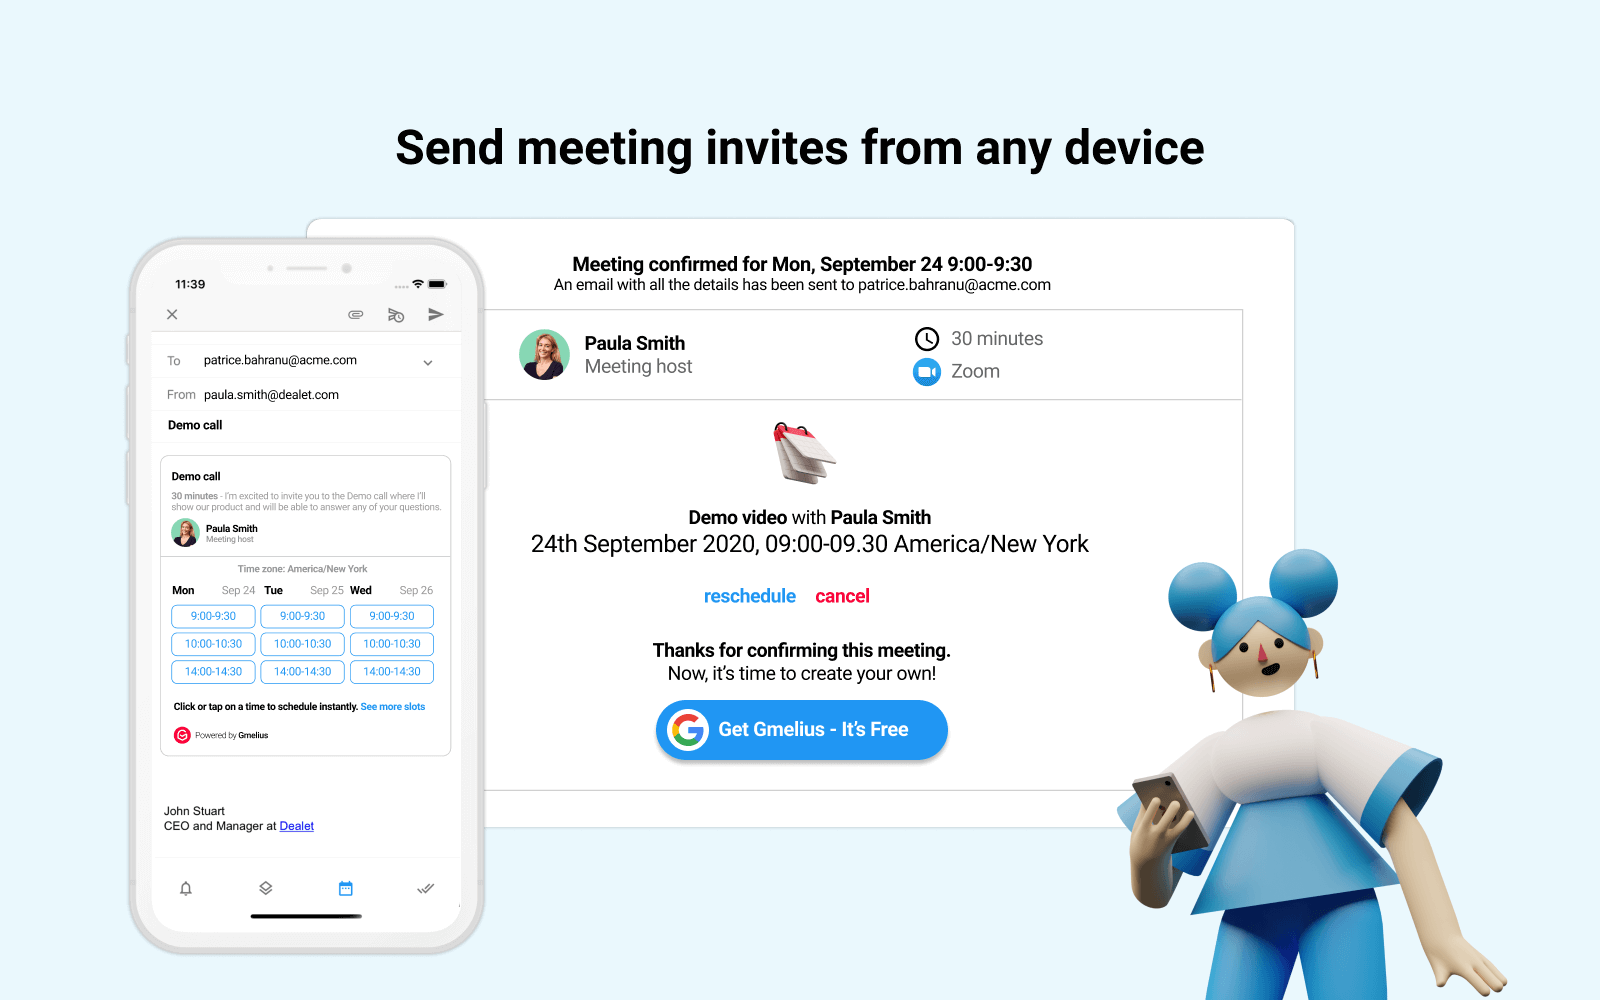 Send meeting invites from any device